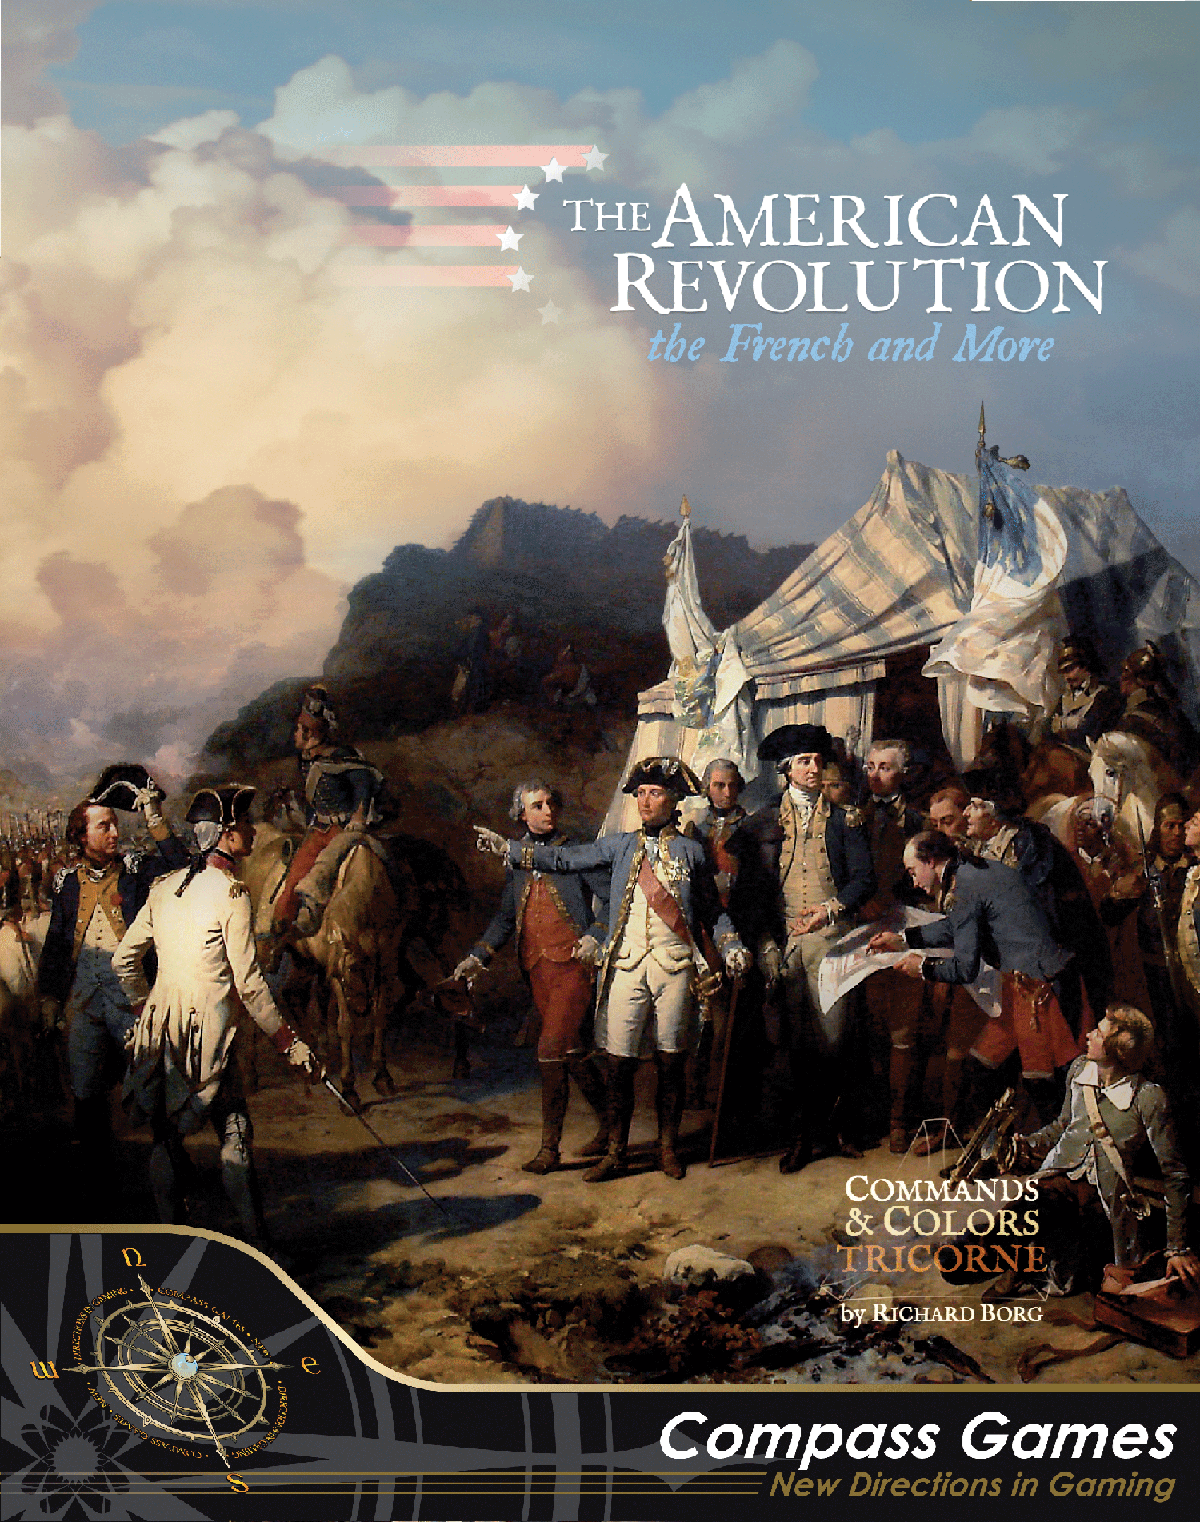 The American Revolution: Commands & Colors (Tricorne)- The French and More